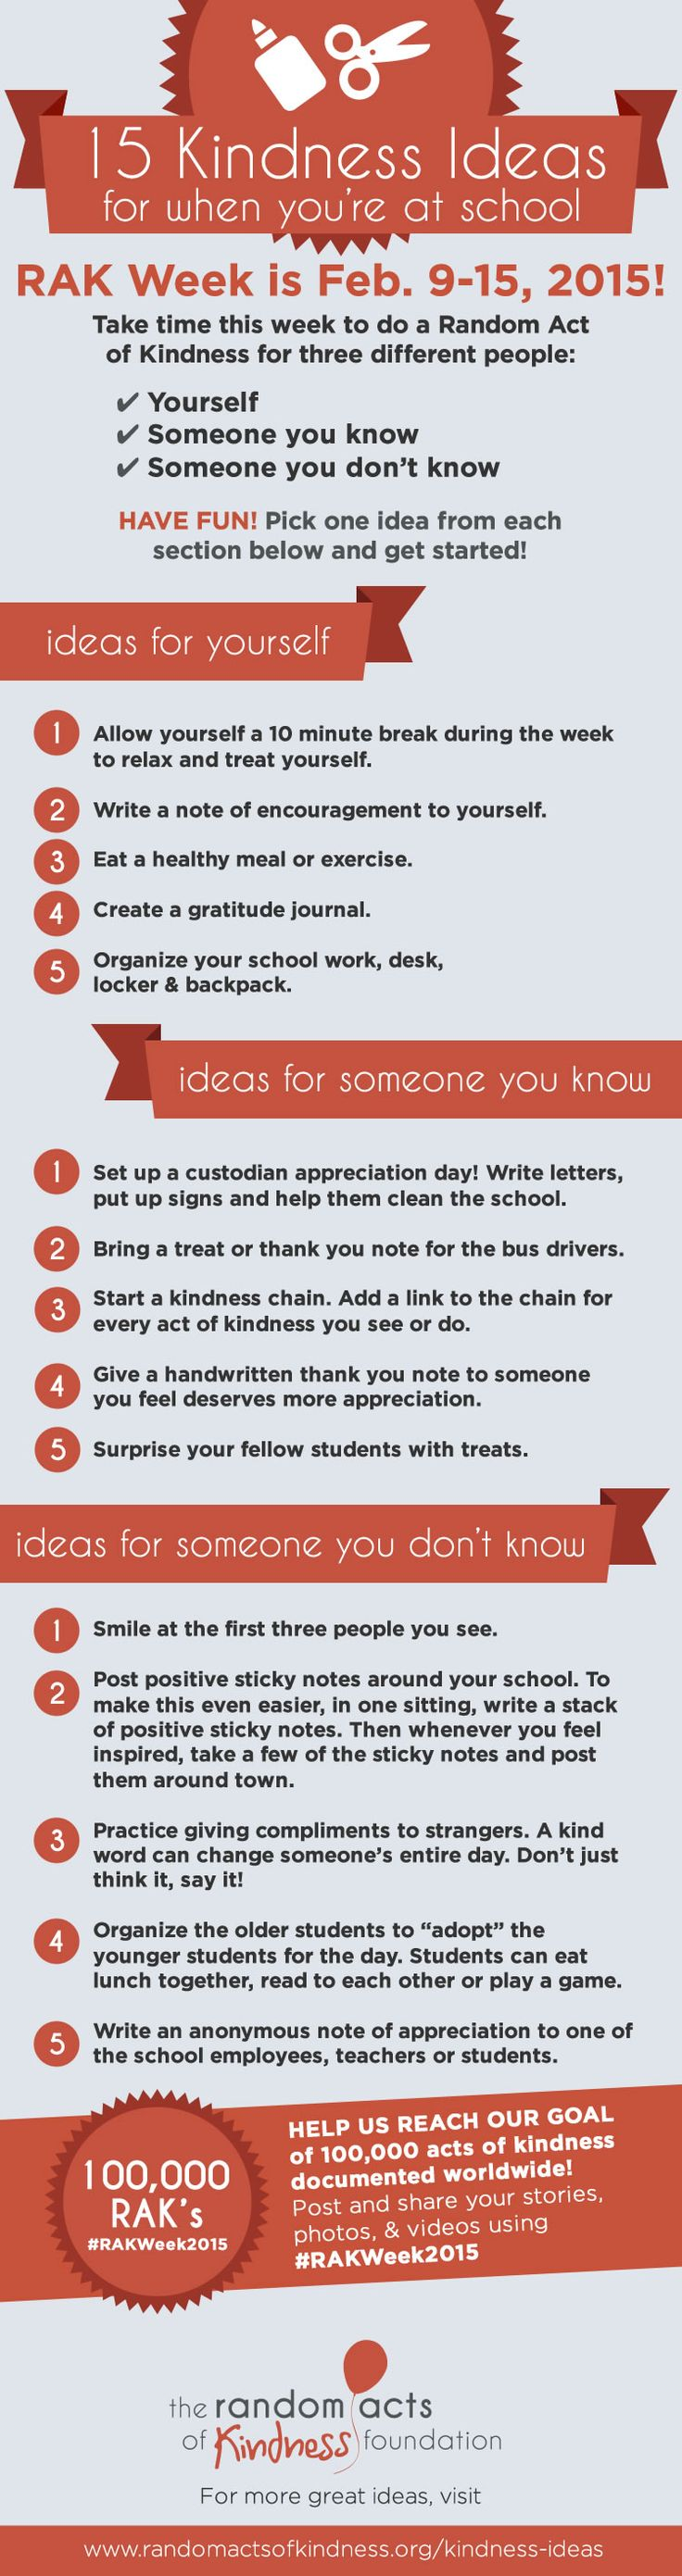 15 Kindness Ideas For When You're At School #rakweek2015